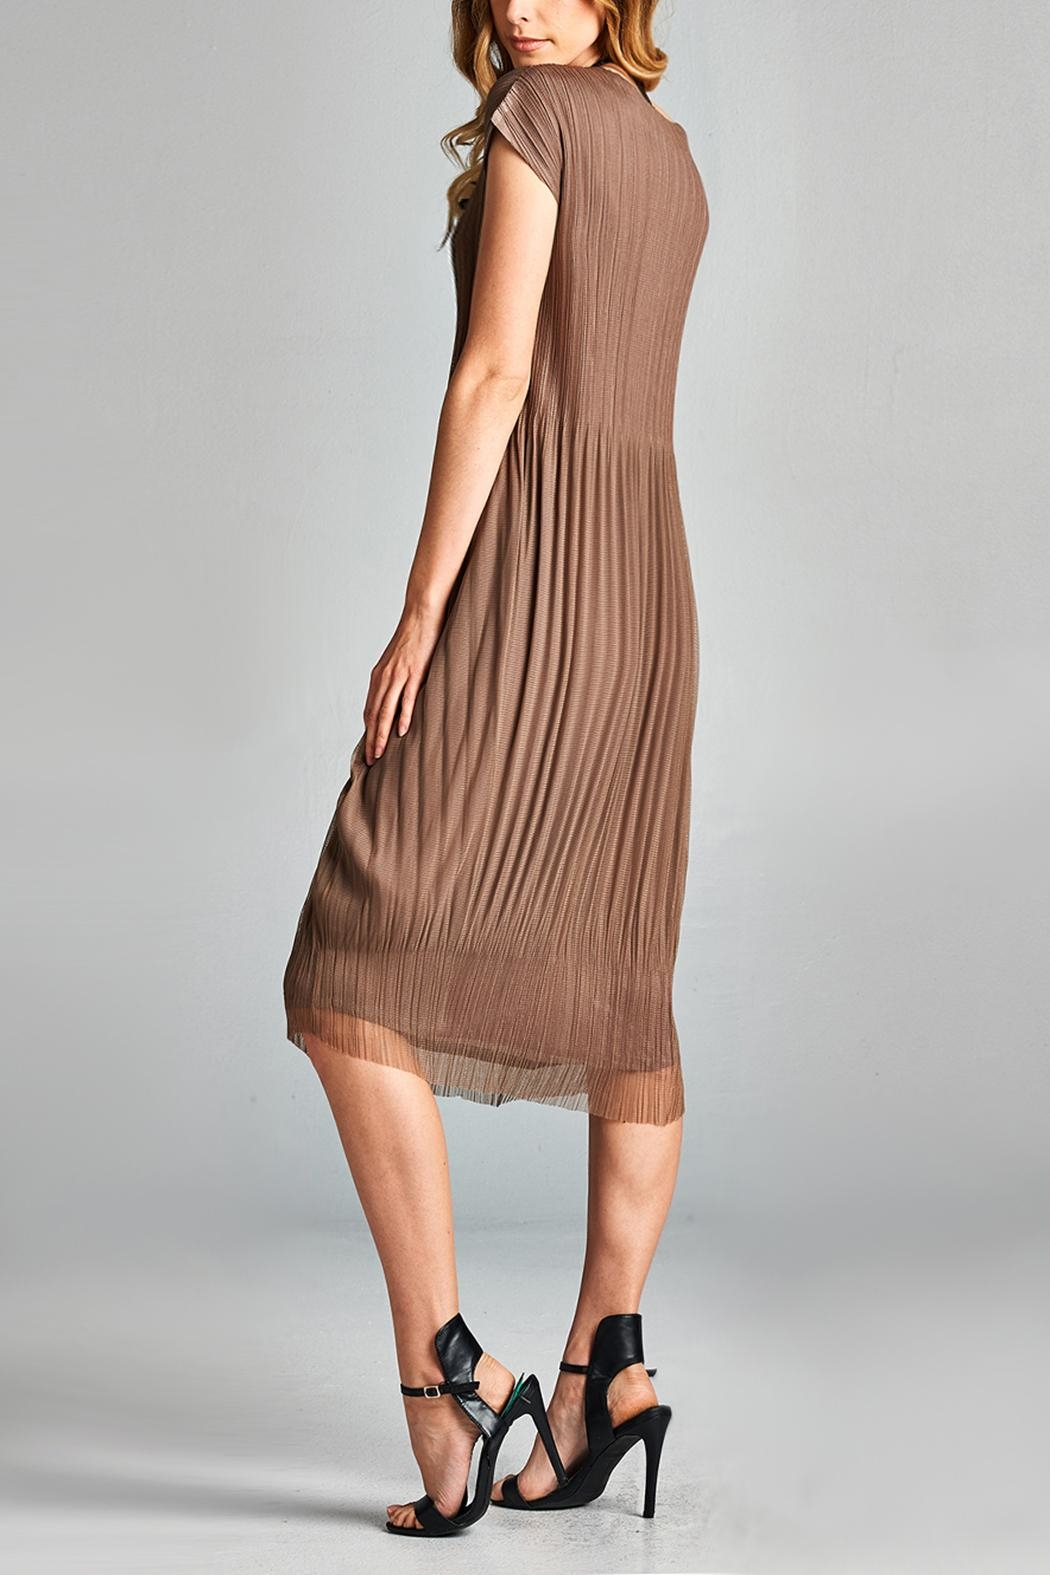 Nabisplace Cf Pleated Dress - Back Cropped Image